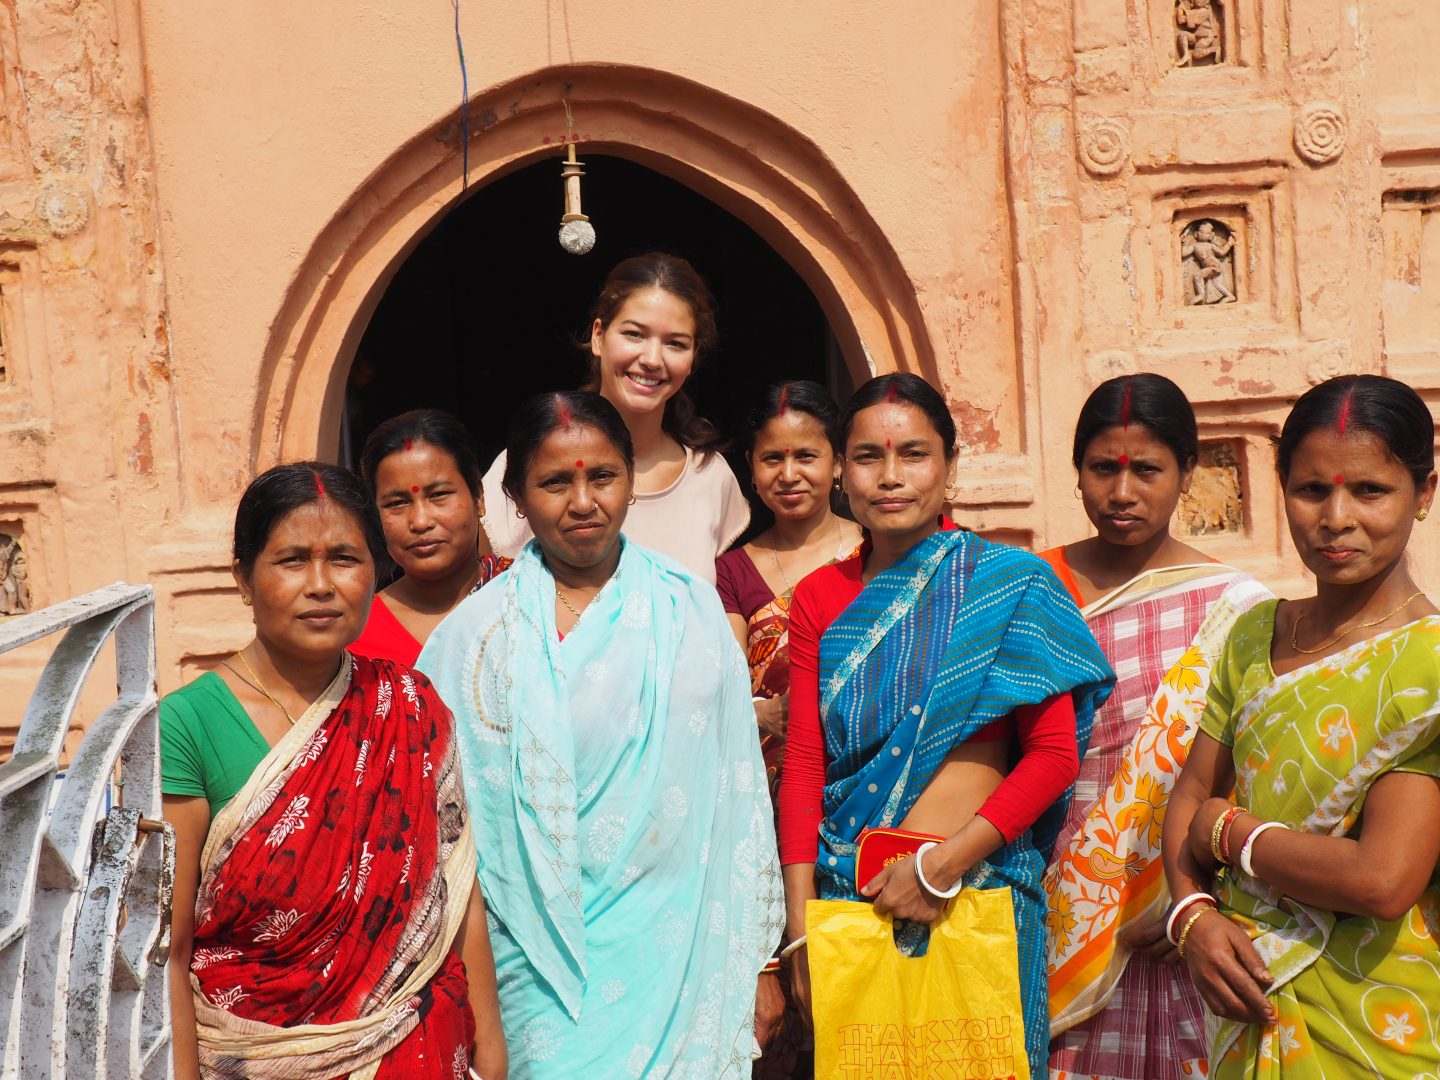 A group of woman stand together wearing traditional Indian clothing. family, culture, tradition, India